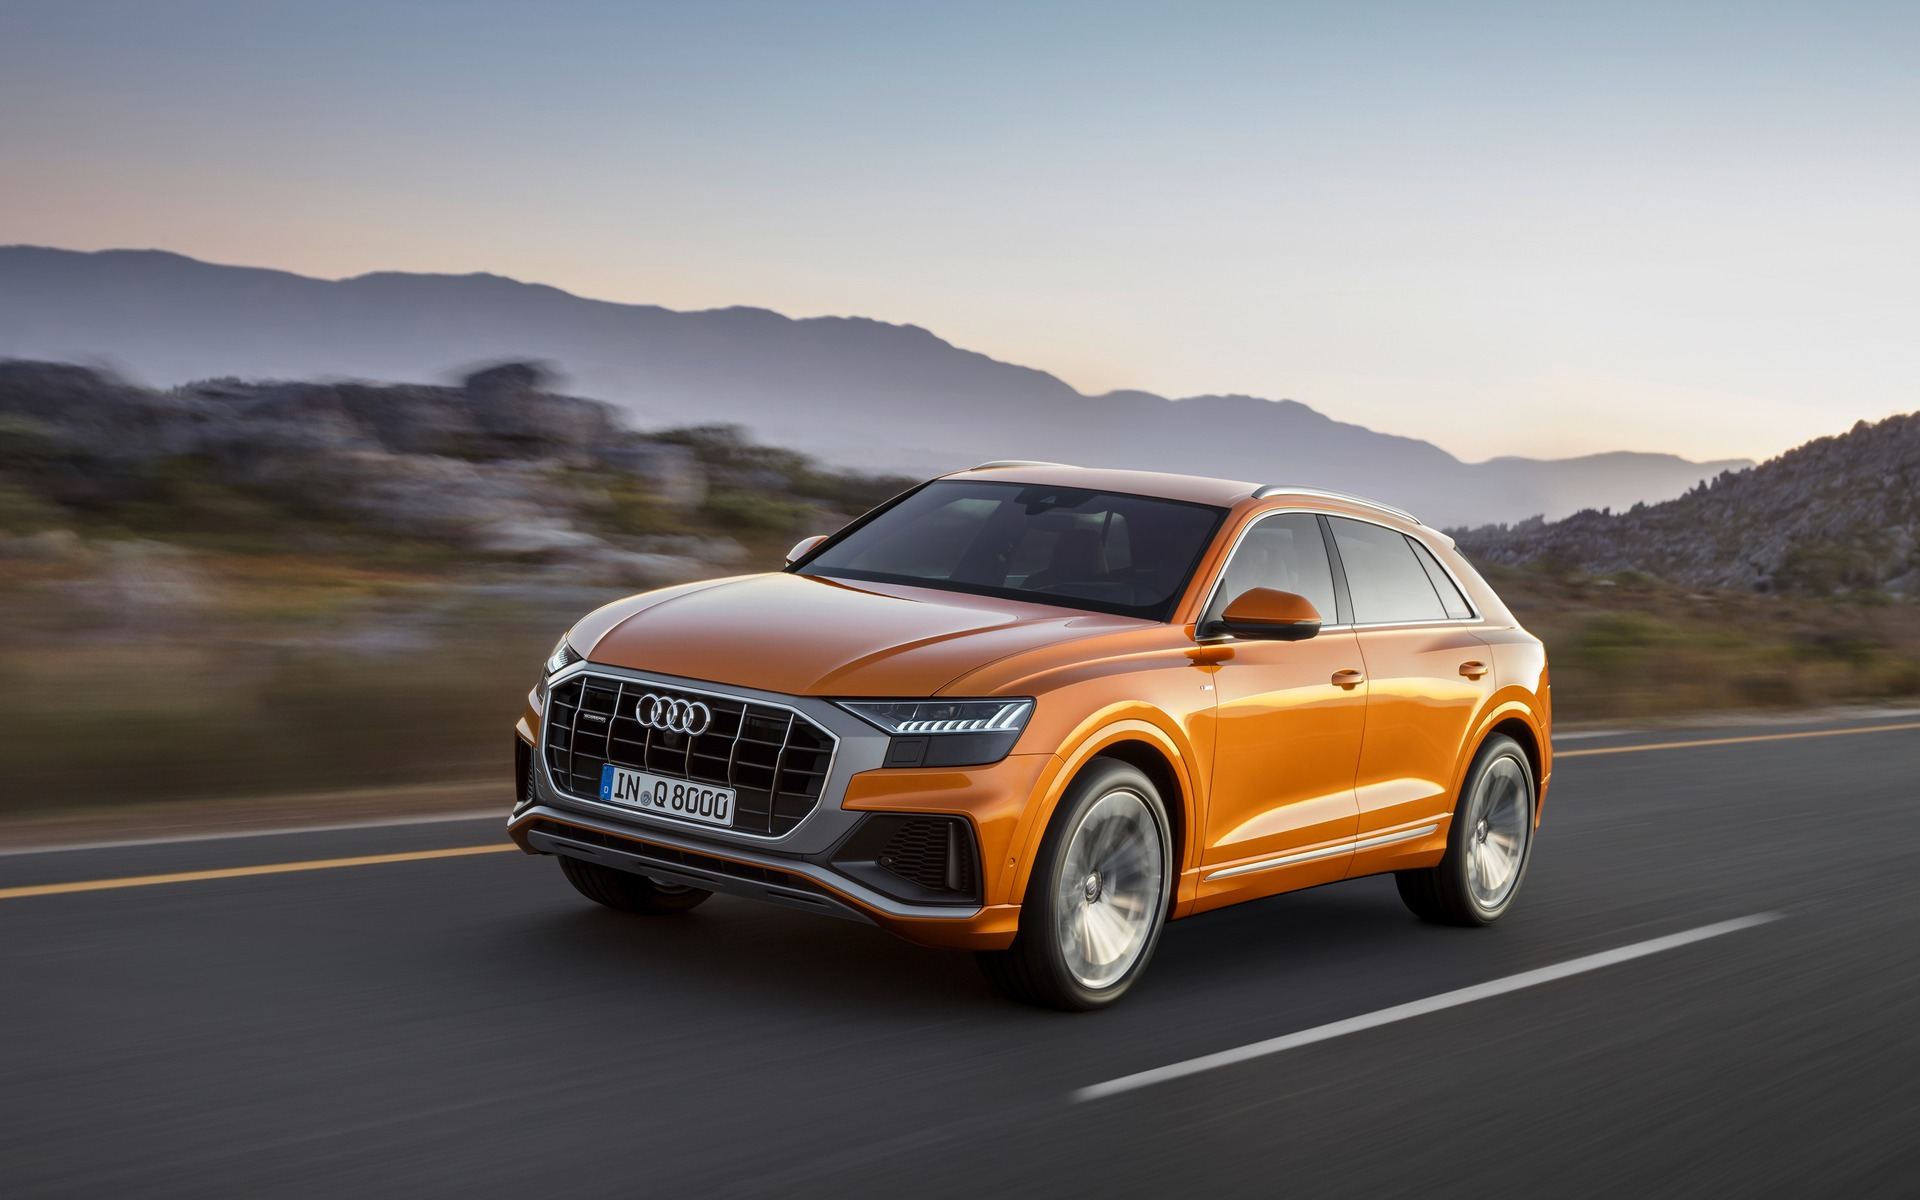 2019 Audi Q8 on the road